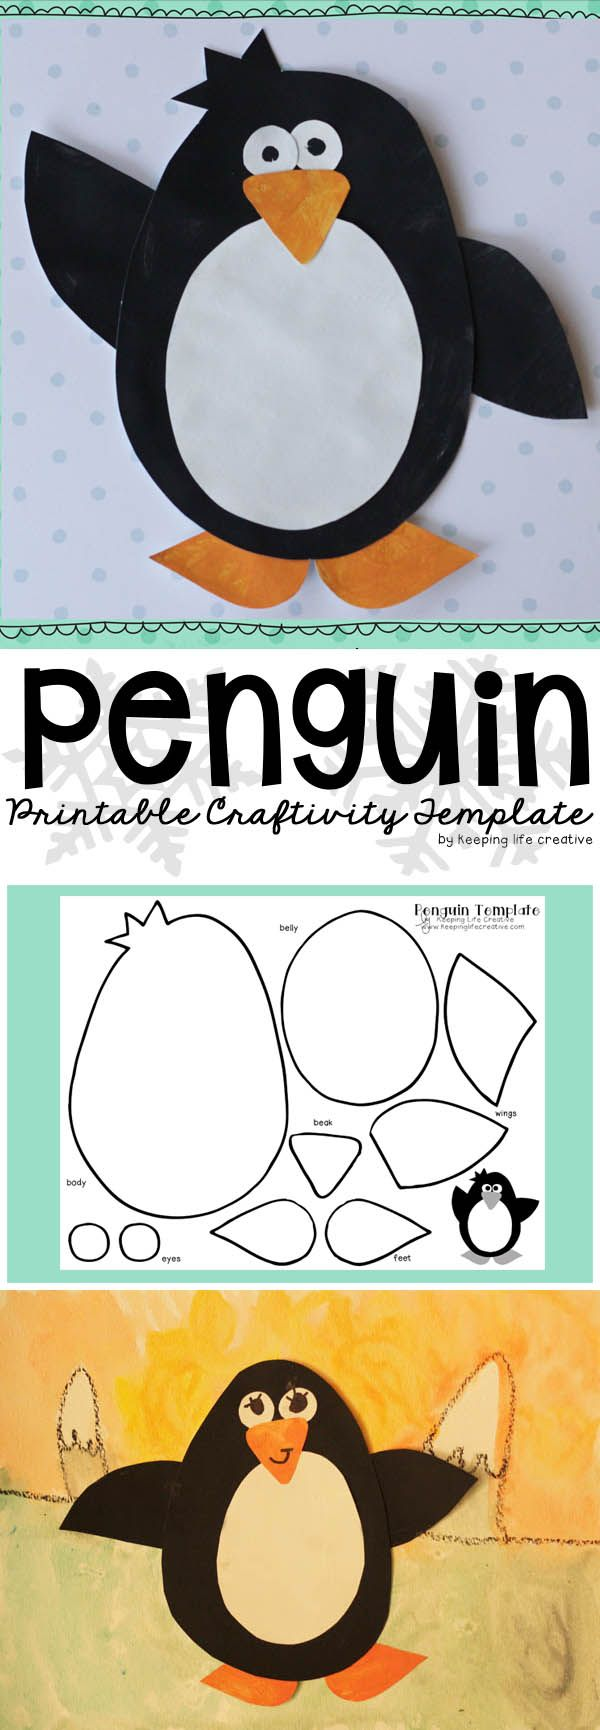 """Try the """"blubber mitten"""" experiment to answer the question, """"Do penguins get cold?"""" and print this penguin template for an adorable winter-themed art project."""